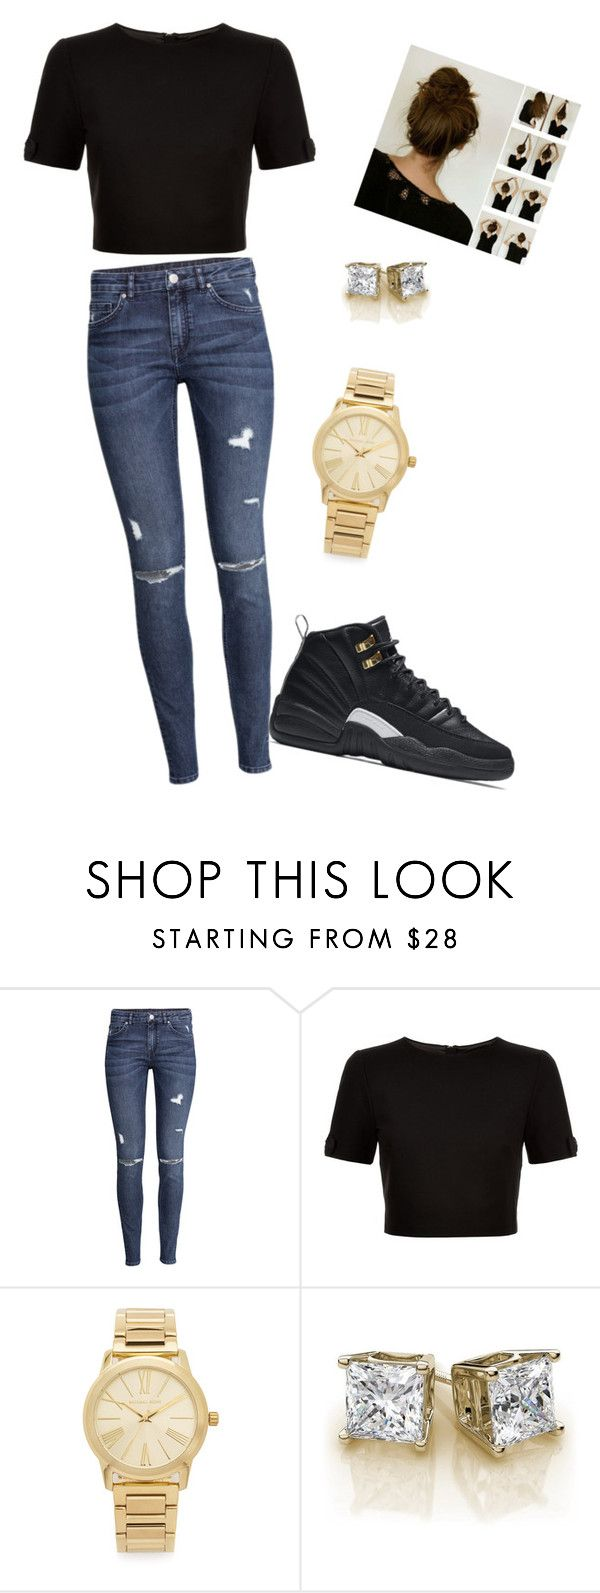 """Jordan outfit jordan 12's masters"" by wessigk ❤ liked on Polyvore featuring H&M, NIKE, Ted Baker and Michael Kors"